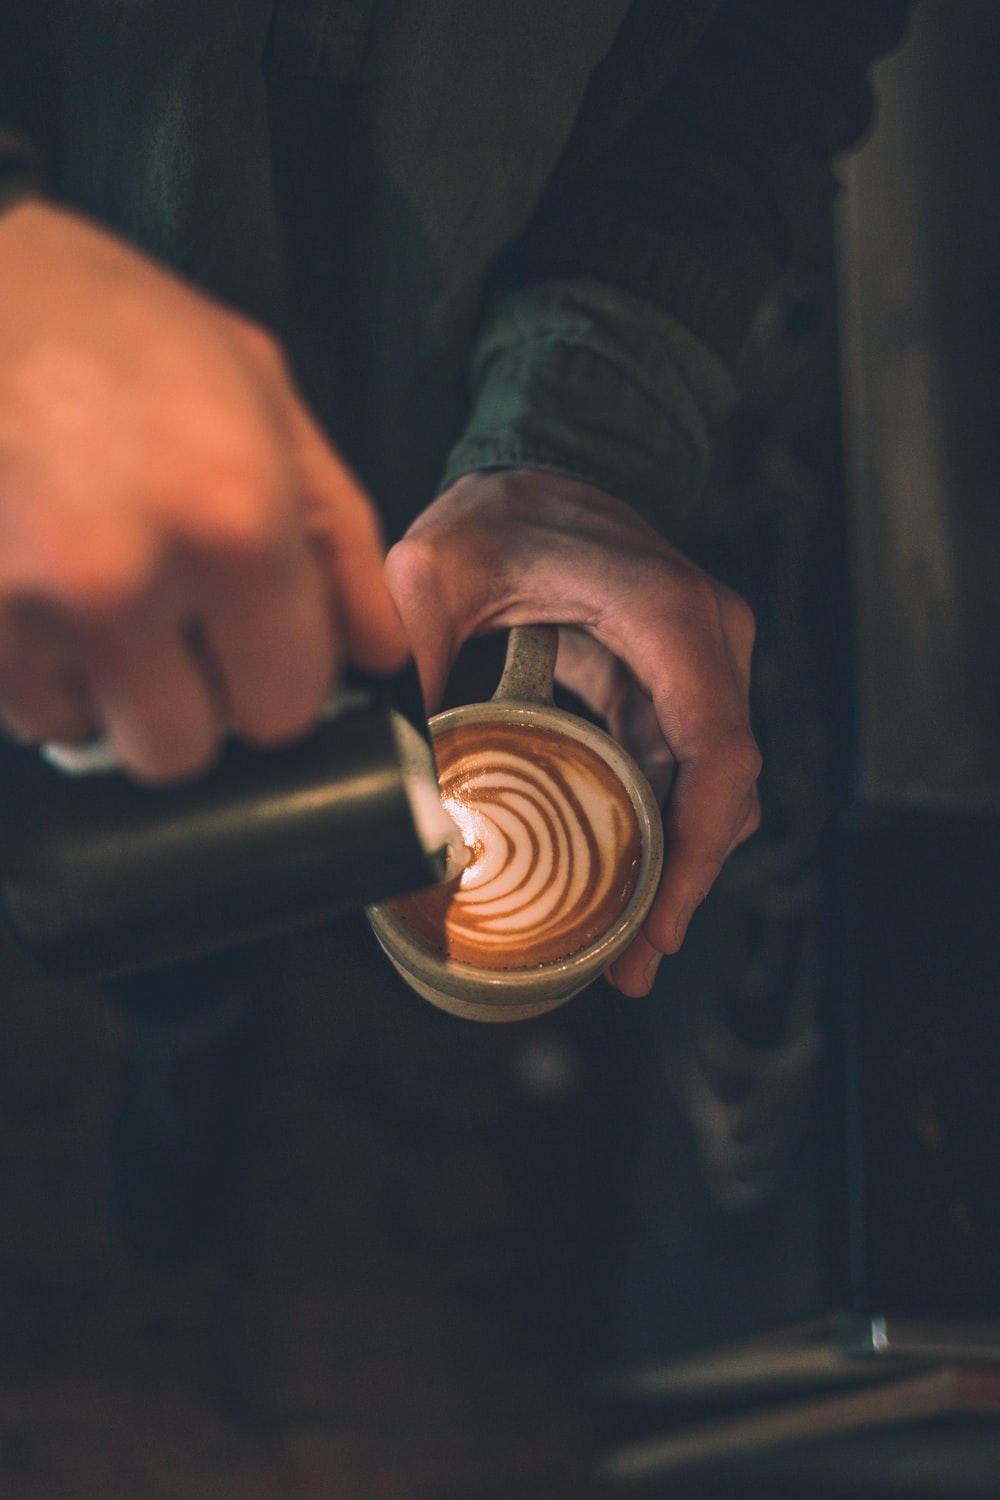 man pouring latte art to cup filled with coffee